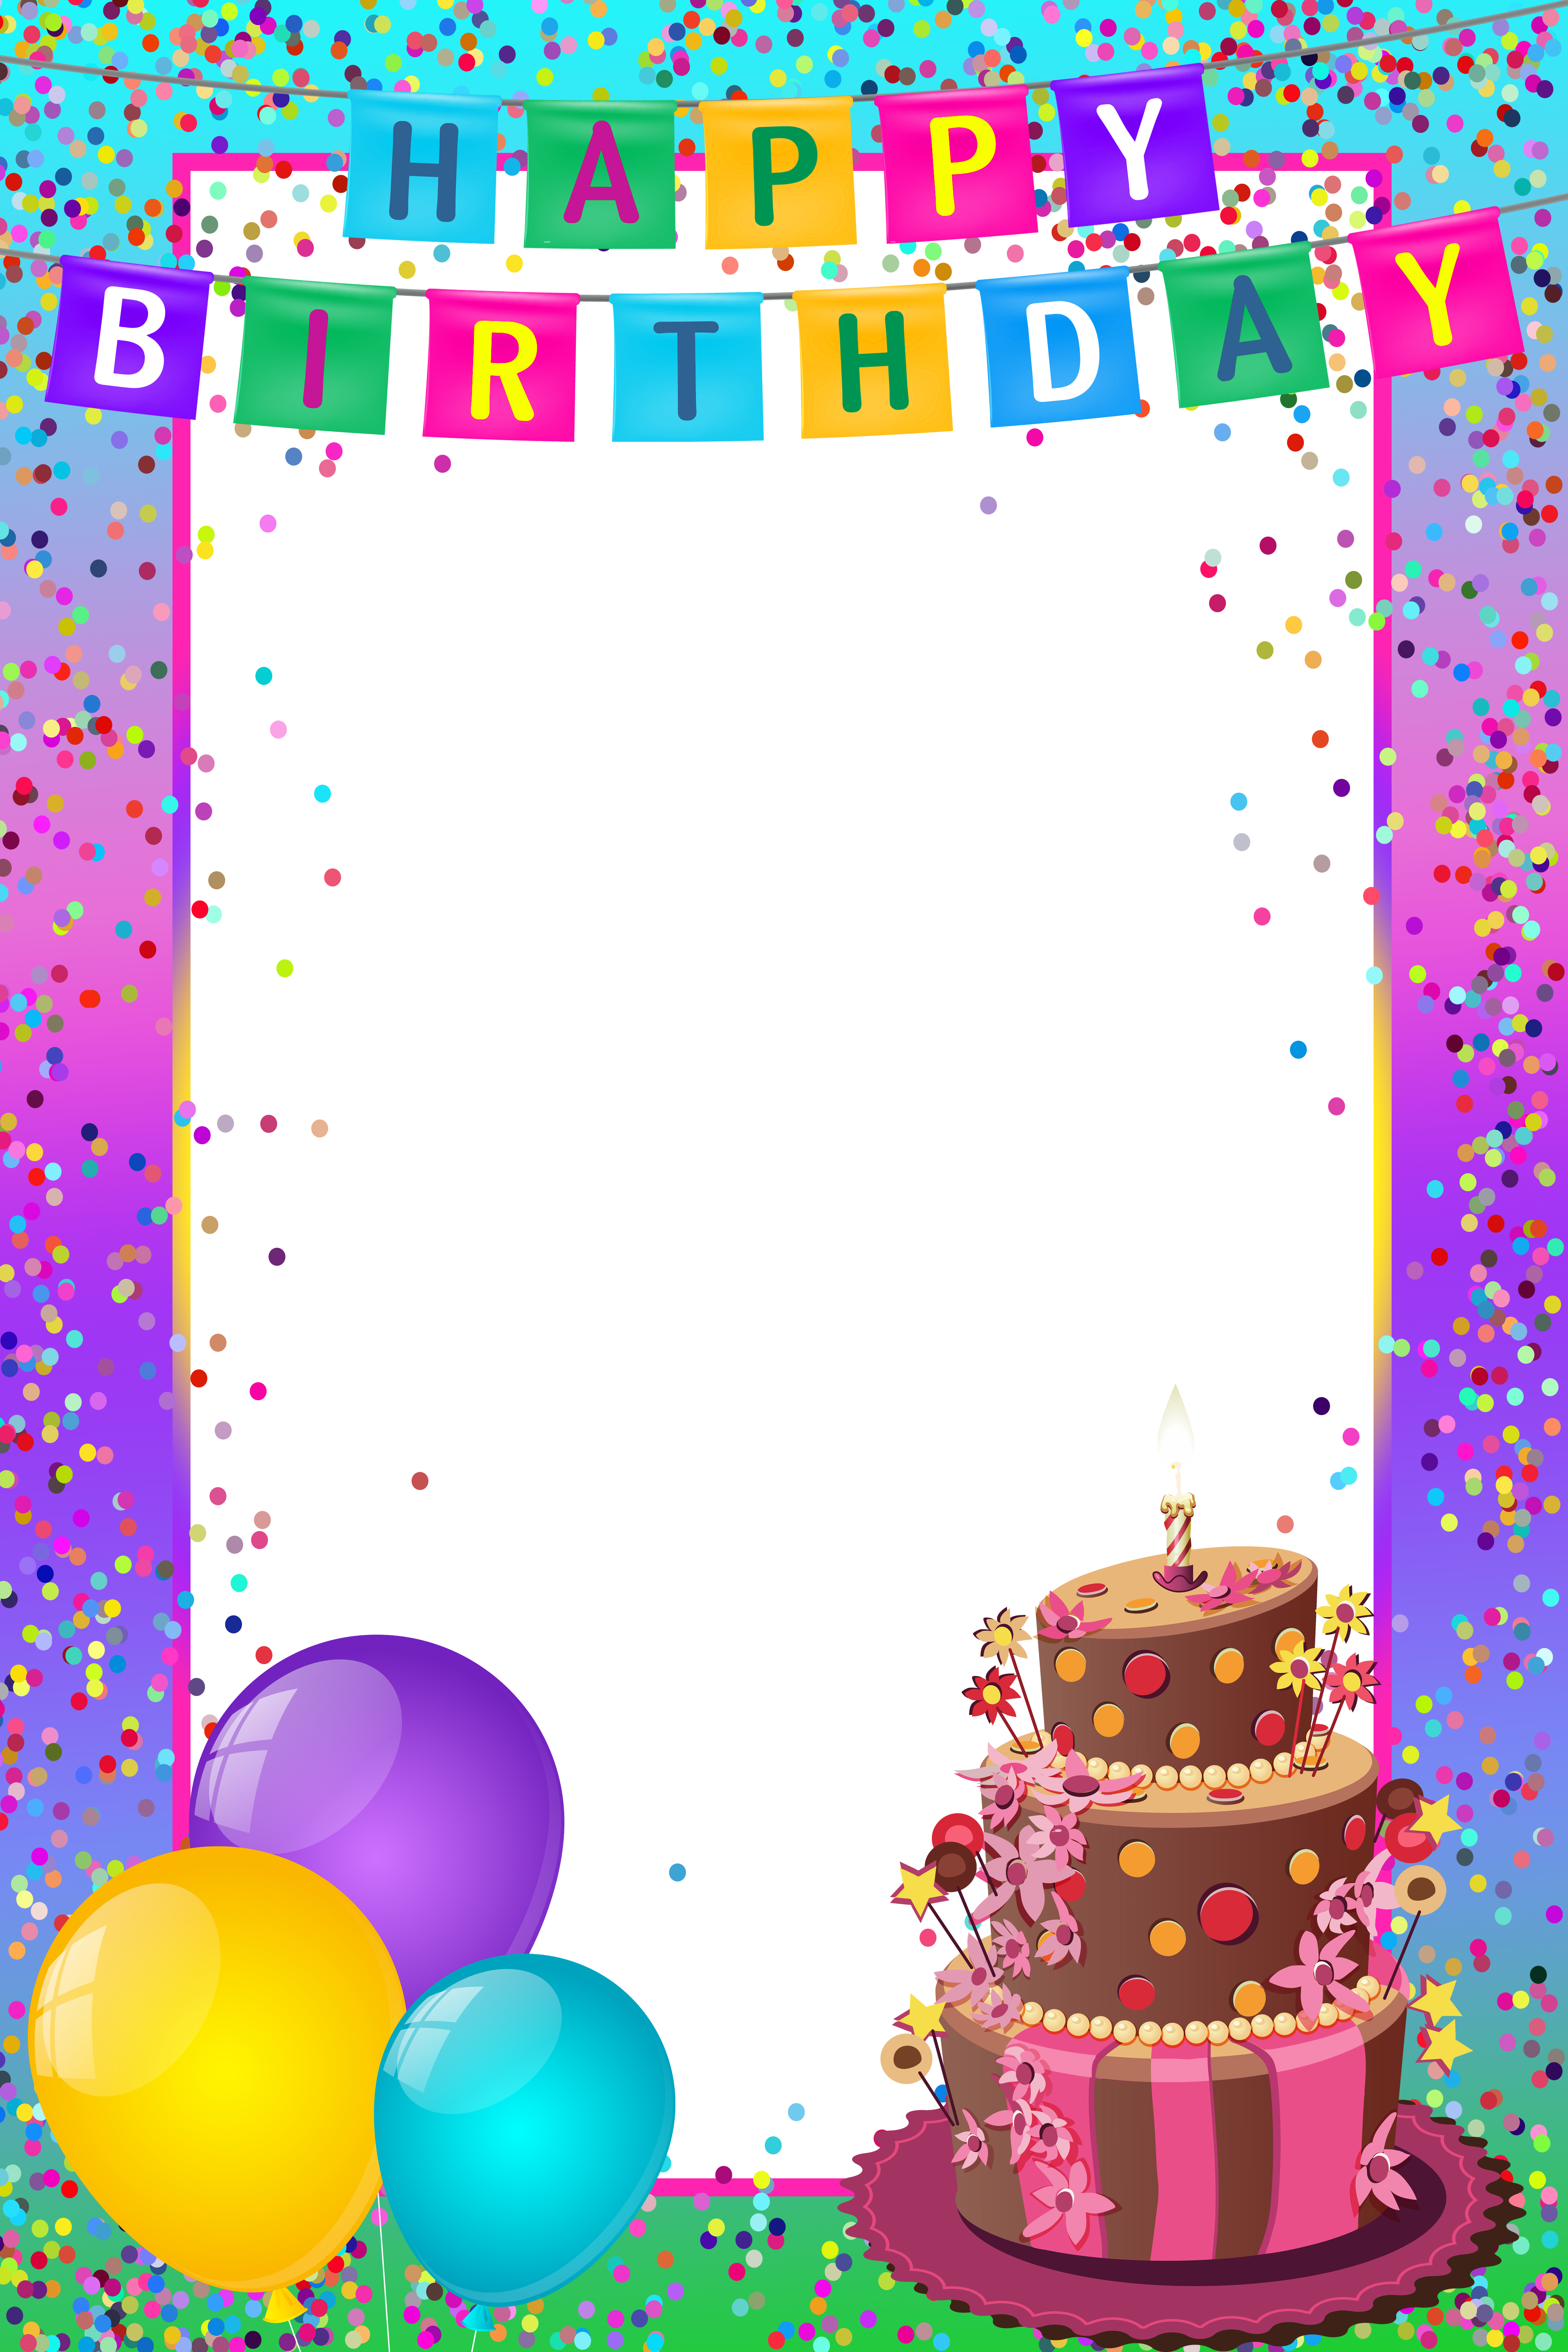 Happy Birthday PNG Transparent Multicolor Frame.